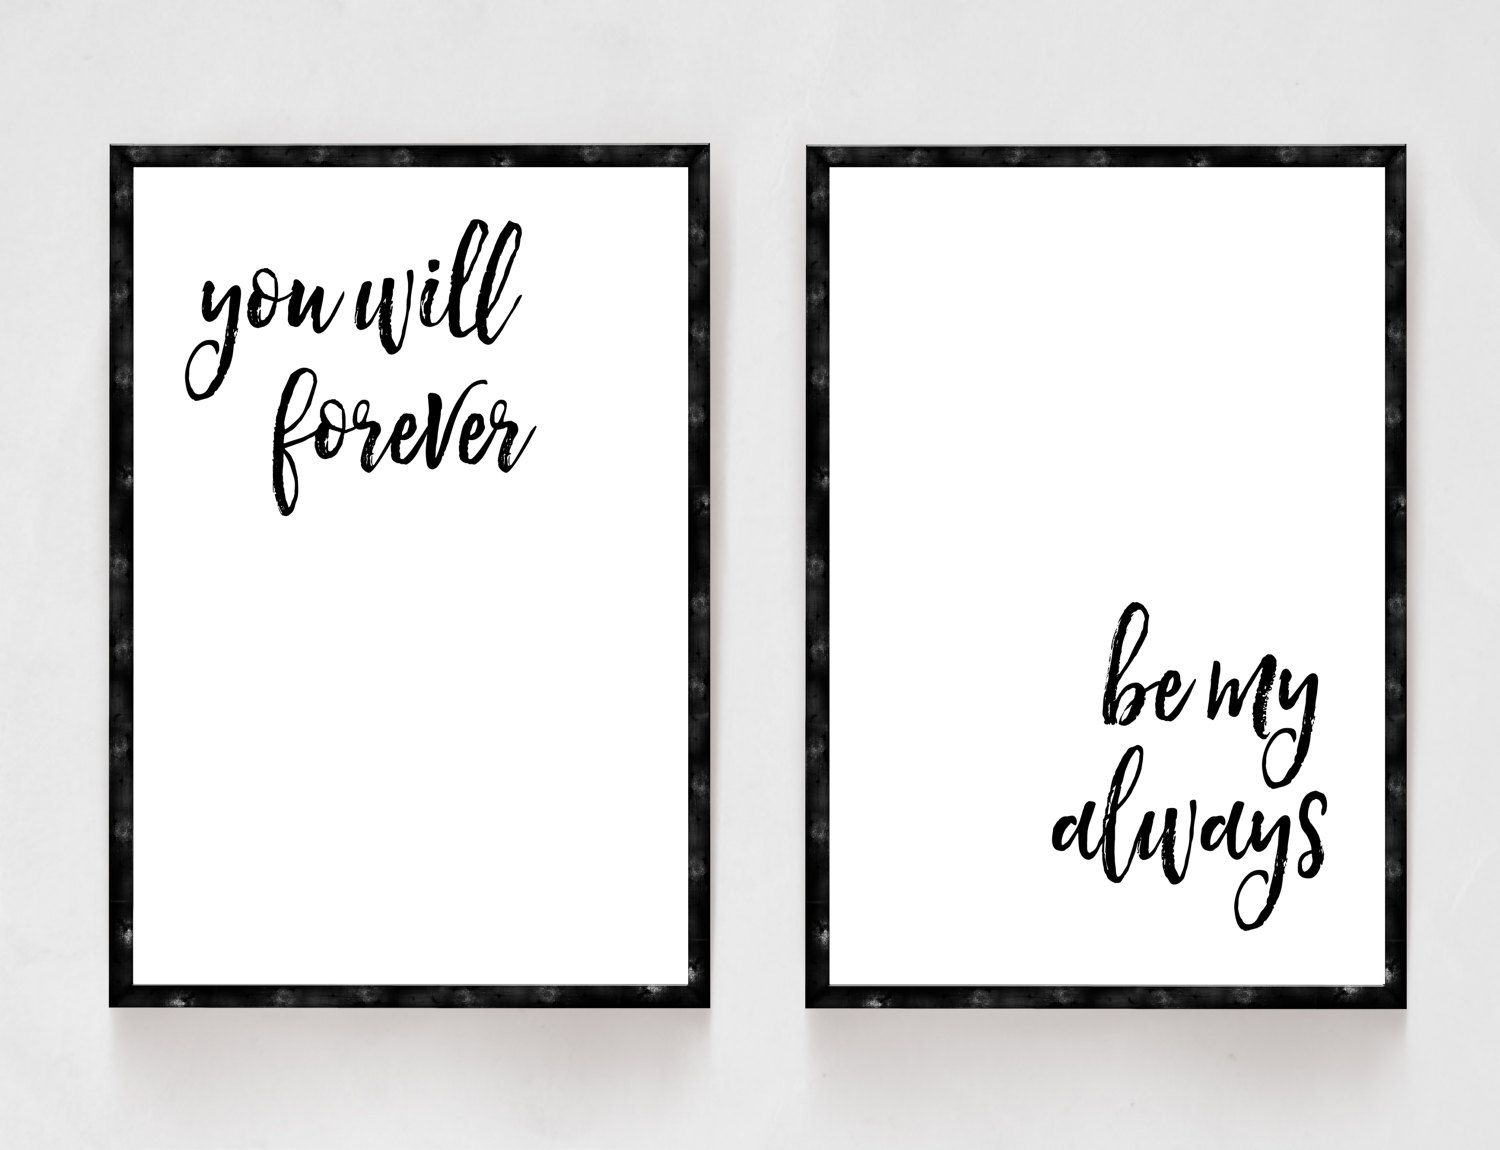 Items similar to You Will Forever Be My Always, Bedroom Decor, Black and White Prints, Wedding Gifts, Newlywed Gifts, His and Hers, Master Bedroom on Etsy